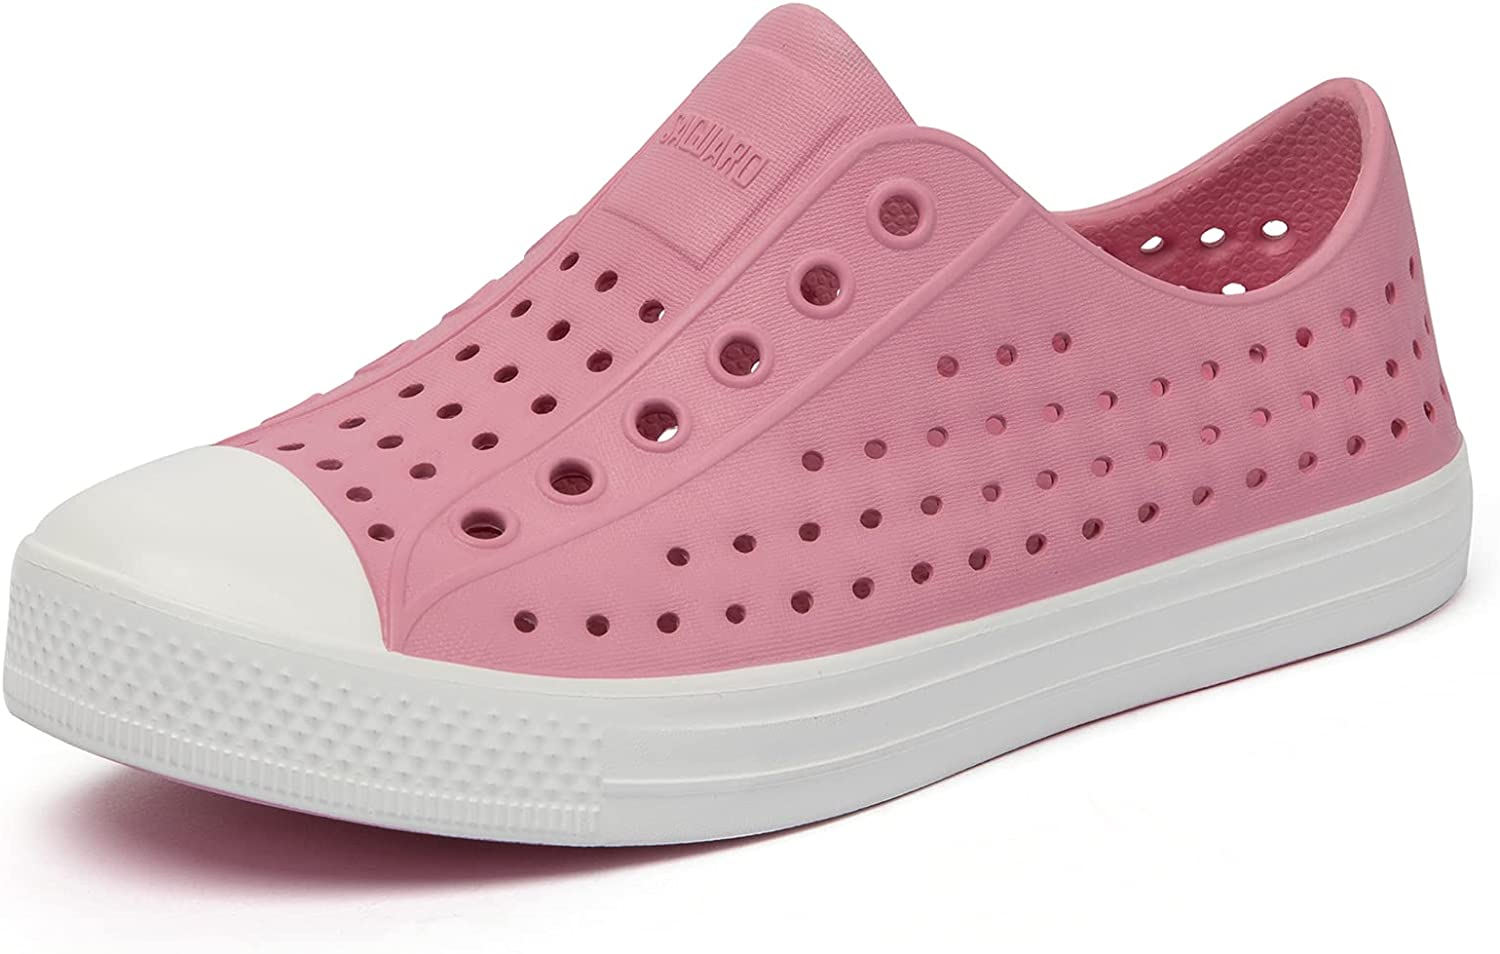 SAGUARO Max 58% OFF Mens Womens Kids Super special price Lightweight Sneaker Slip-On Breathable